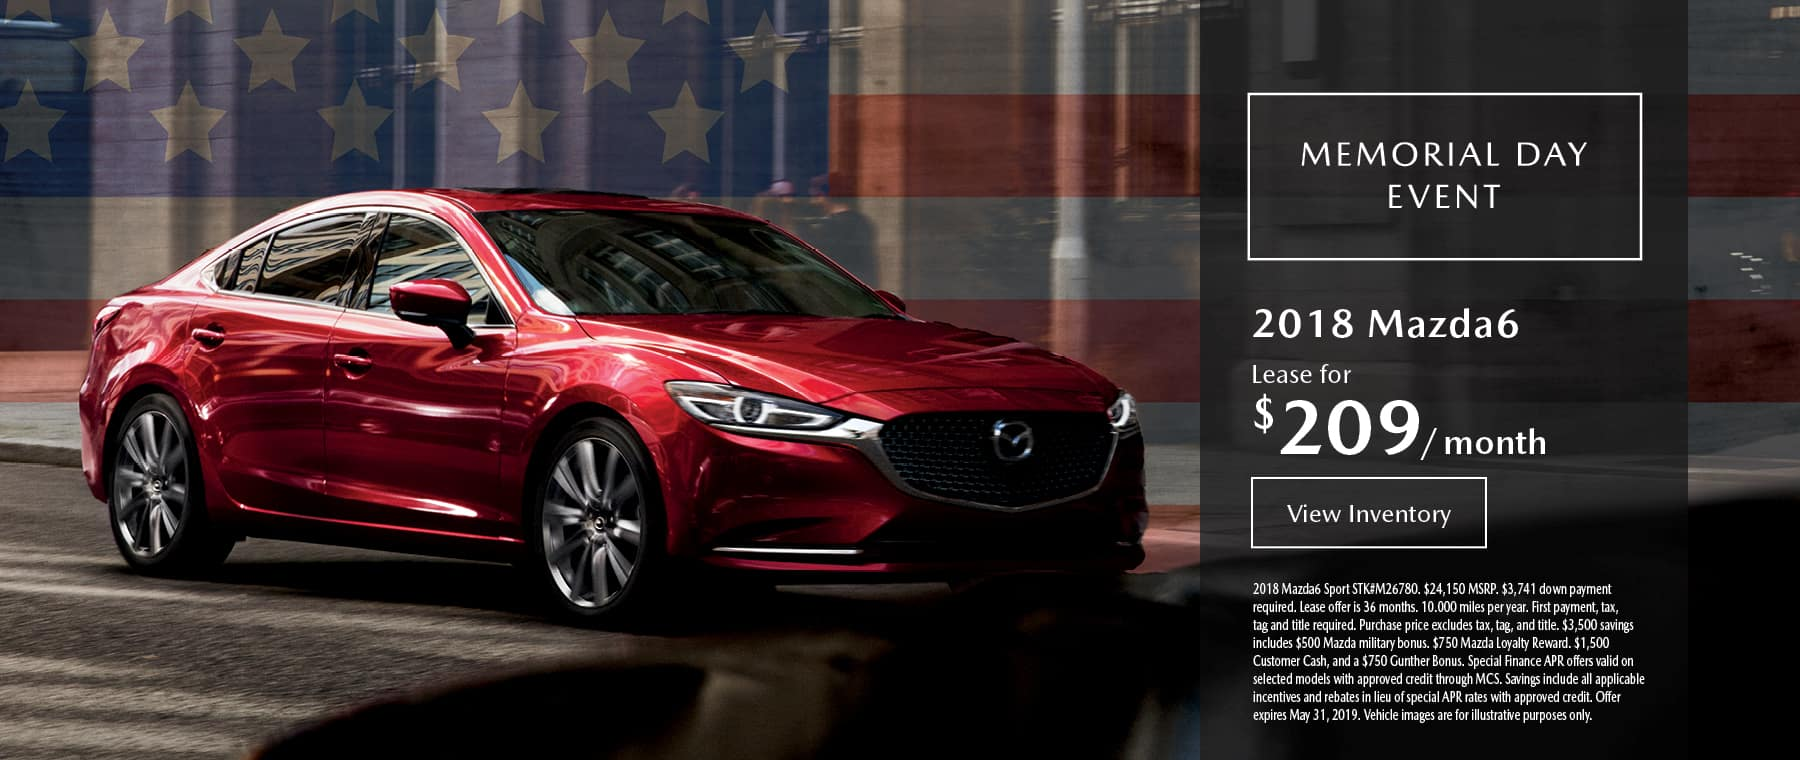 Lease the 2019 Mazda6 for $209 per month, plus tax